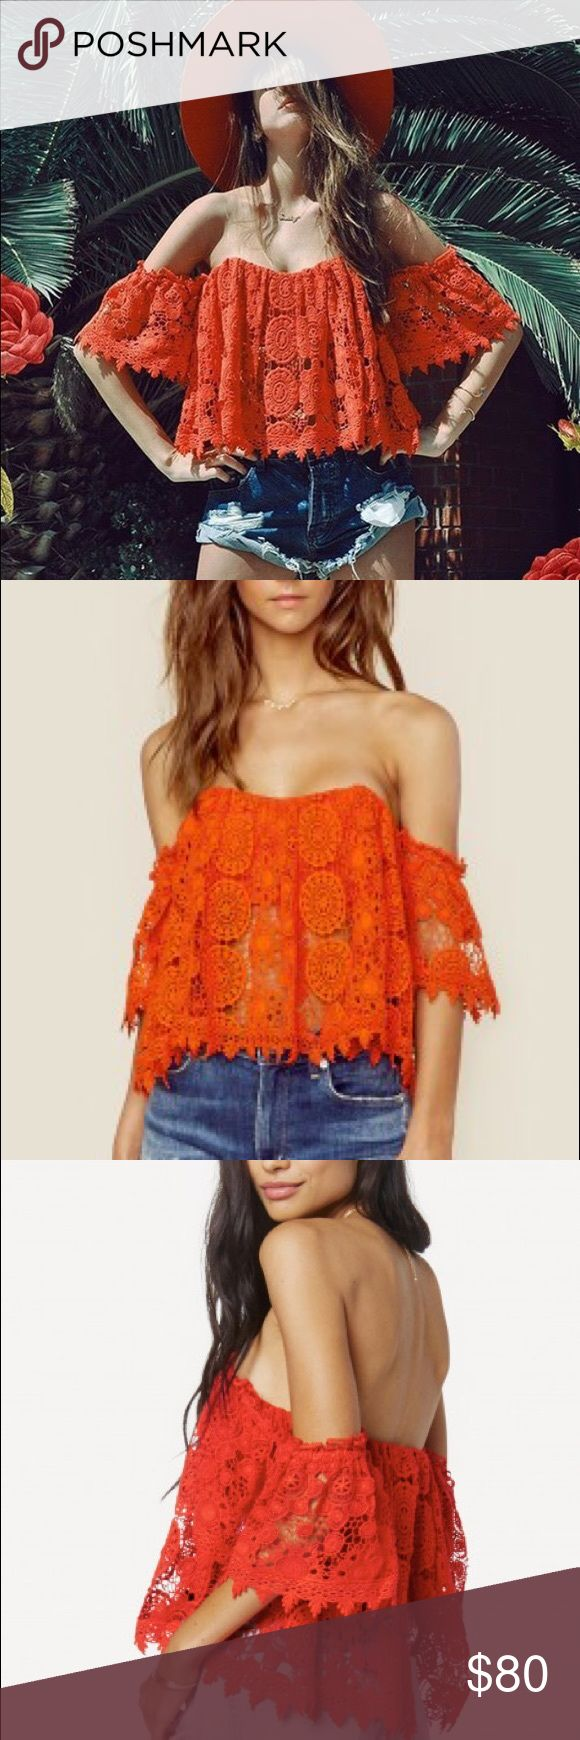 Tularosa Amelia red lace top Plastic bodice boning. Lace fabric. Hidden back zipper closure. Brand new tags attached. Perfect for Coachella, spring break. You name it! A must have piece! Hand wash care. Tularosa Tops